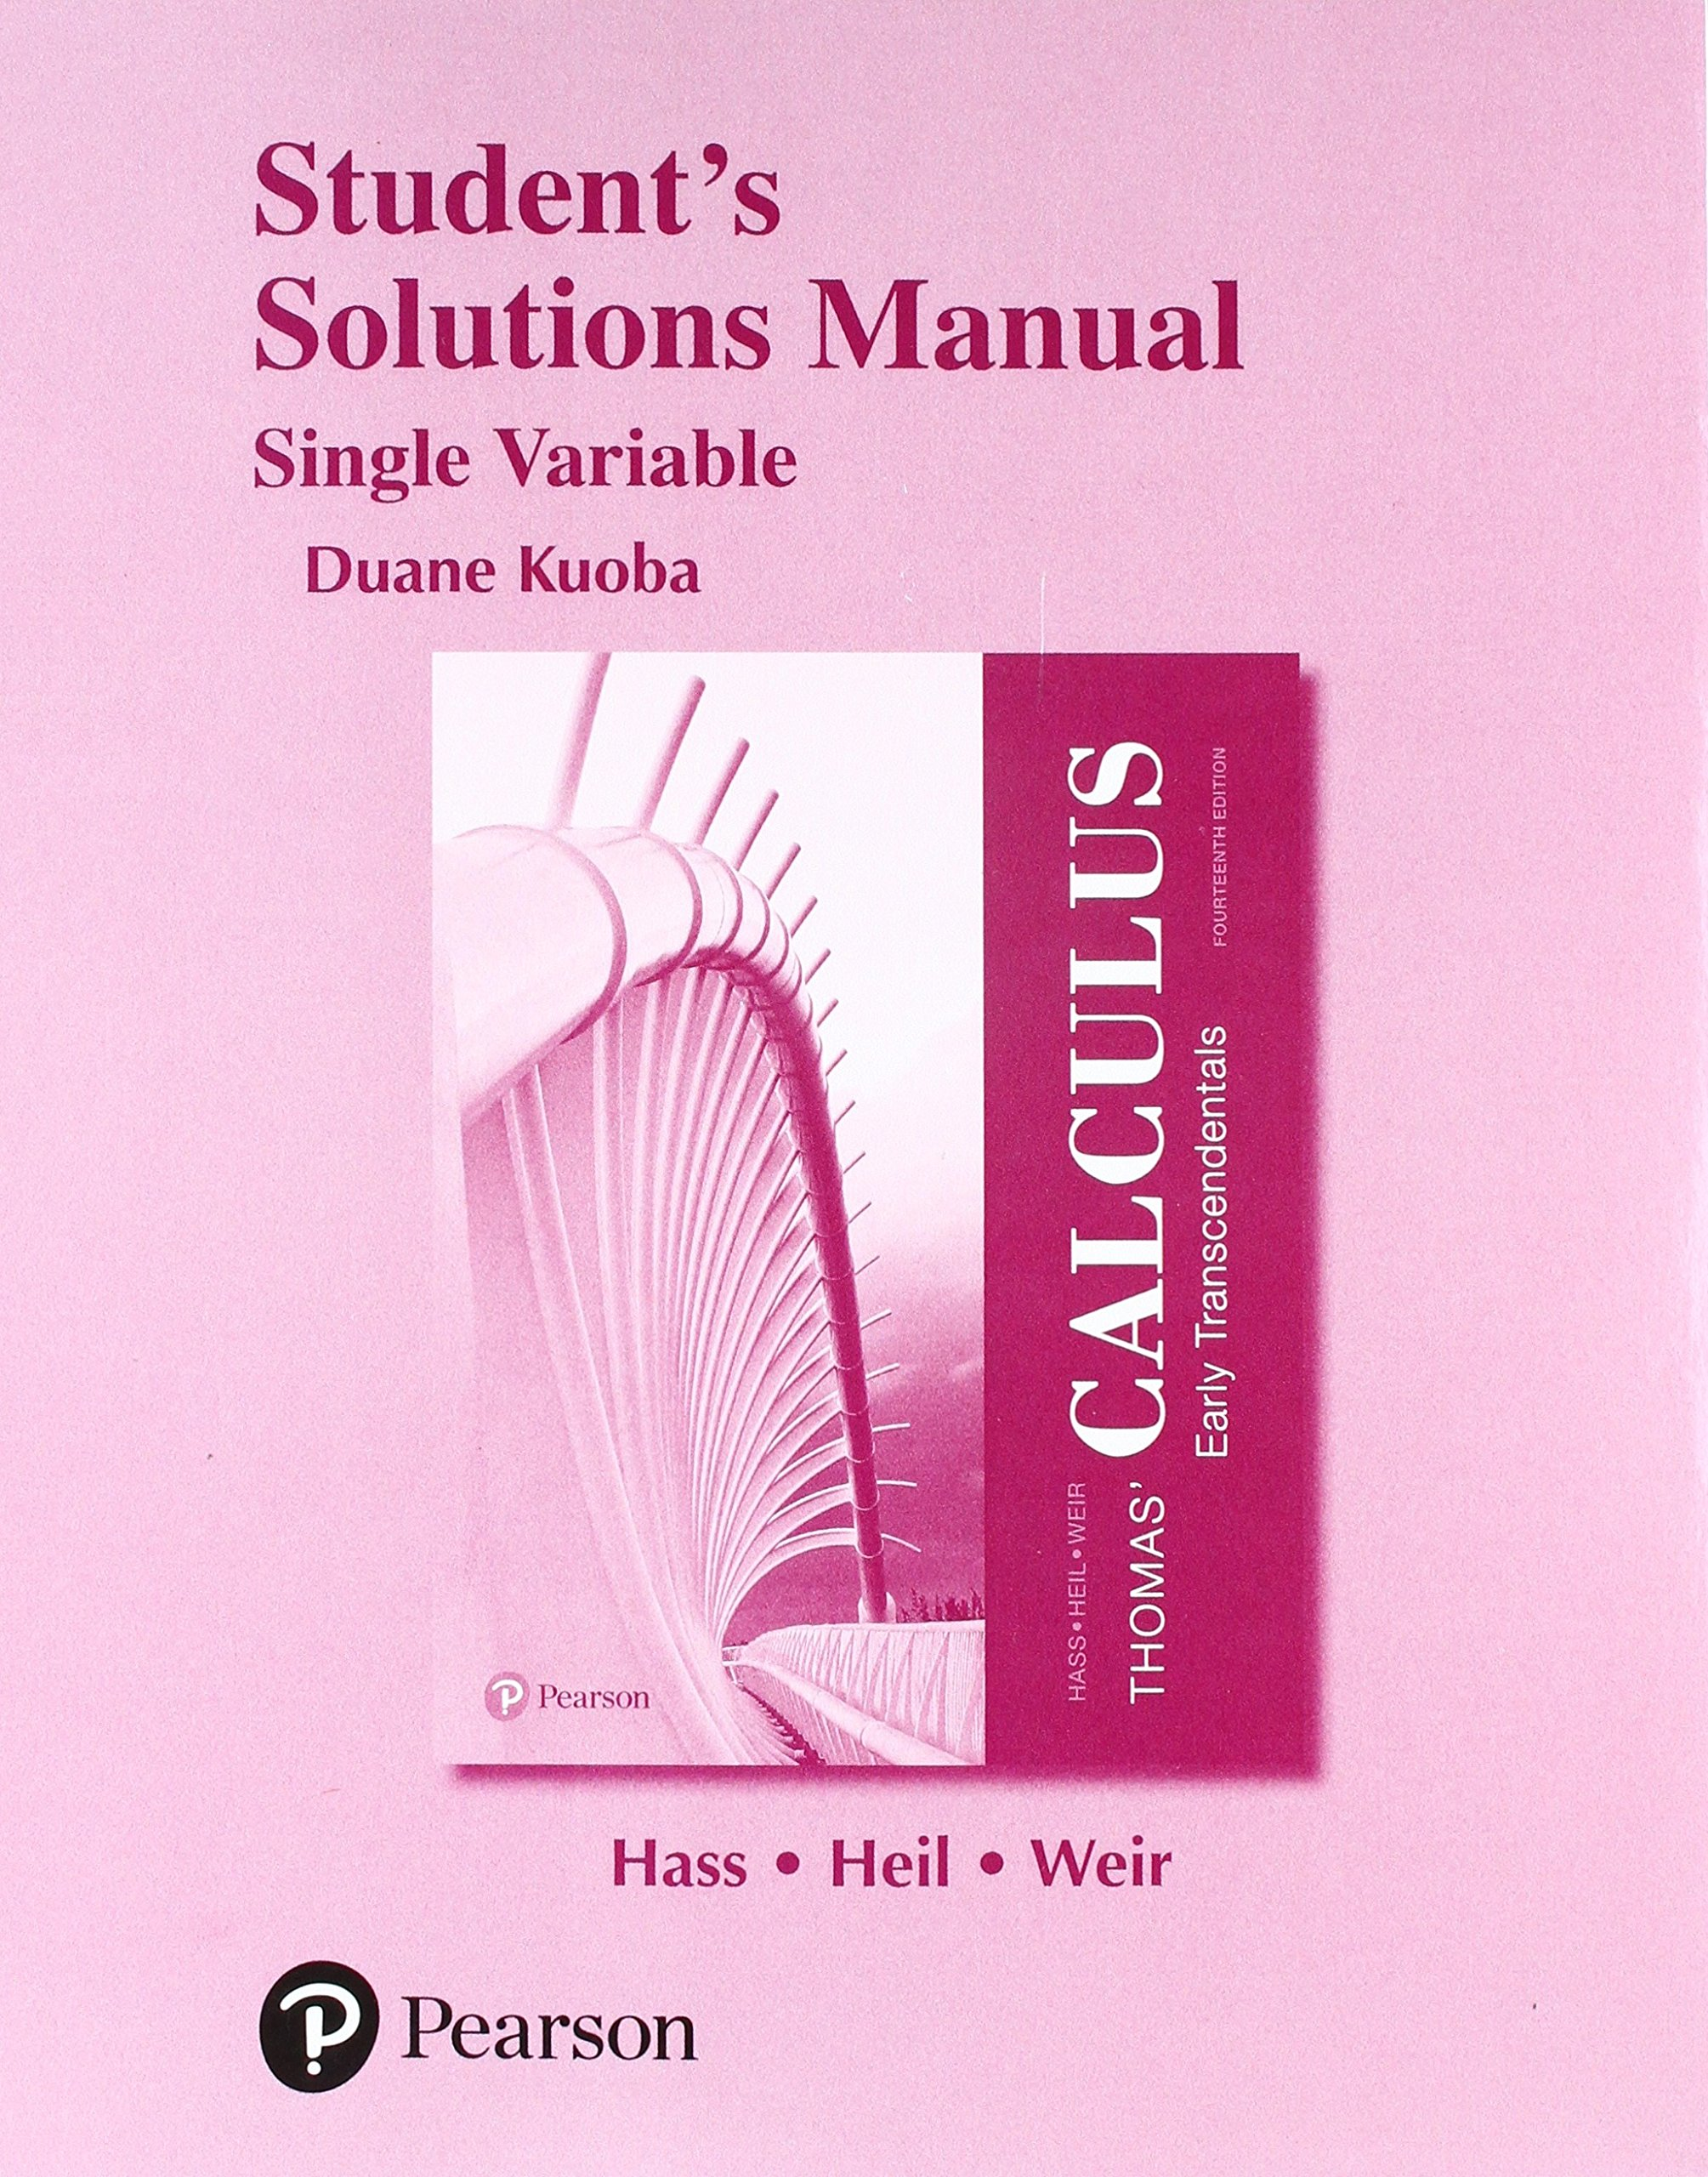 Student Solutions Manual for Thomas' Calculus: Early Transcendentals,  Single Variable: Joel R. Hass, Christopher E. Heil, Maurice D. Weir,  Christopher Heil: ...